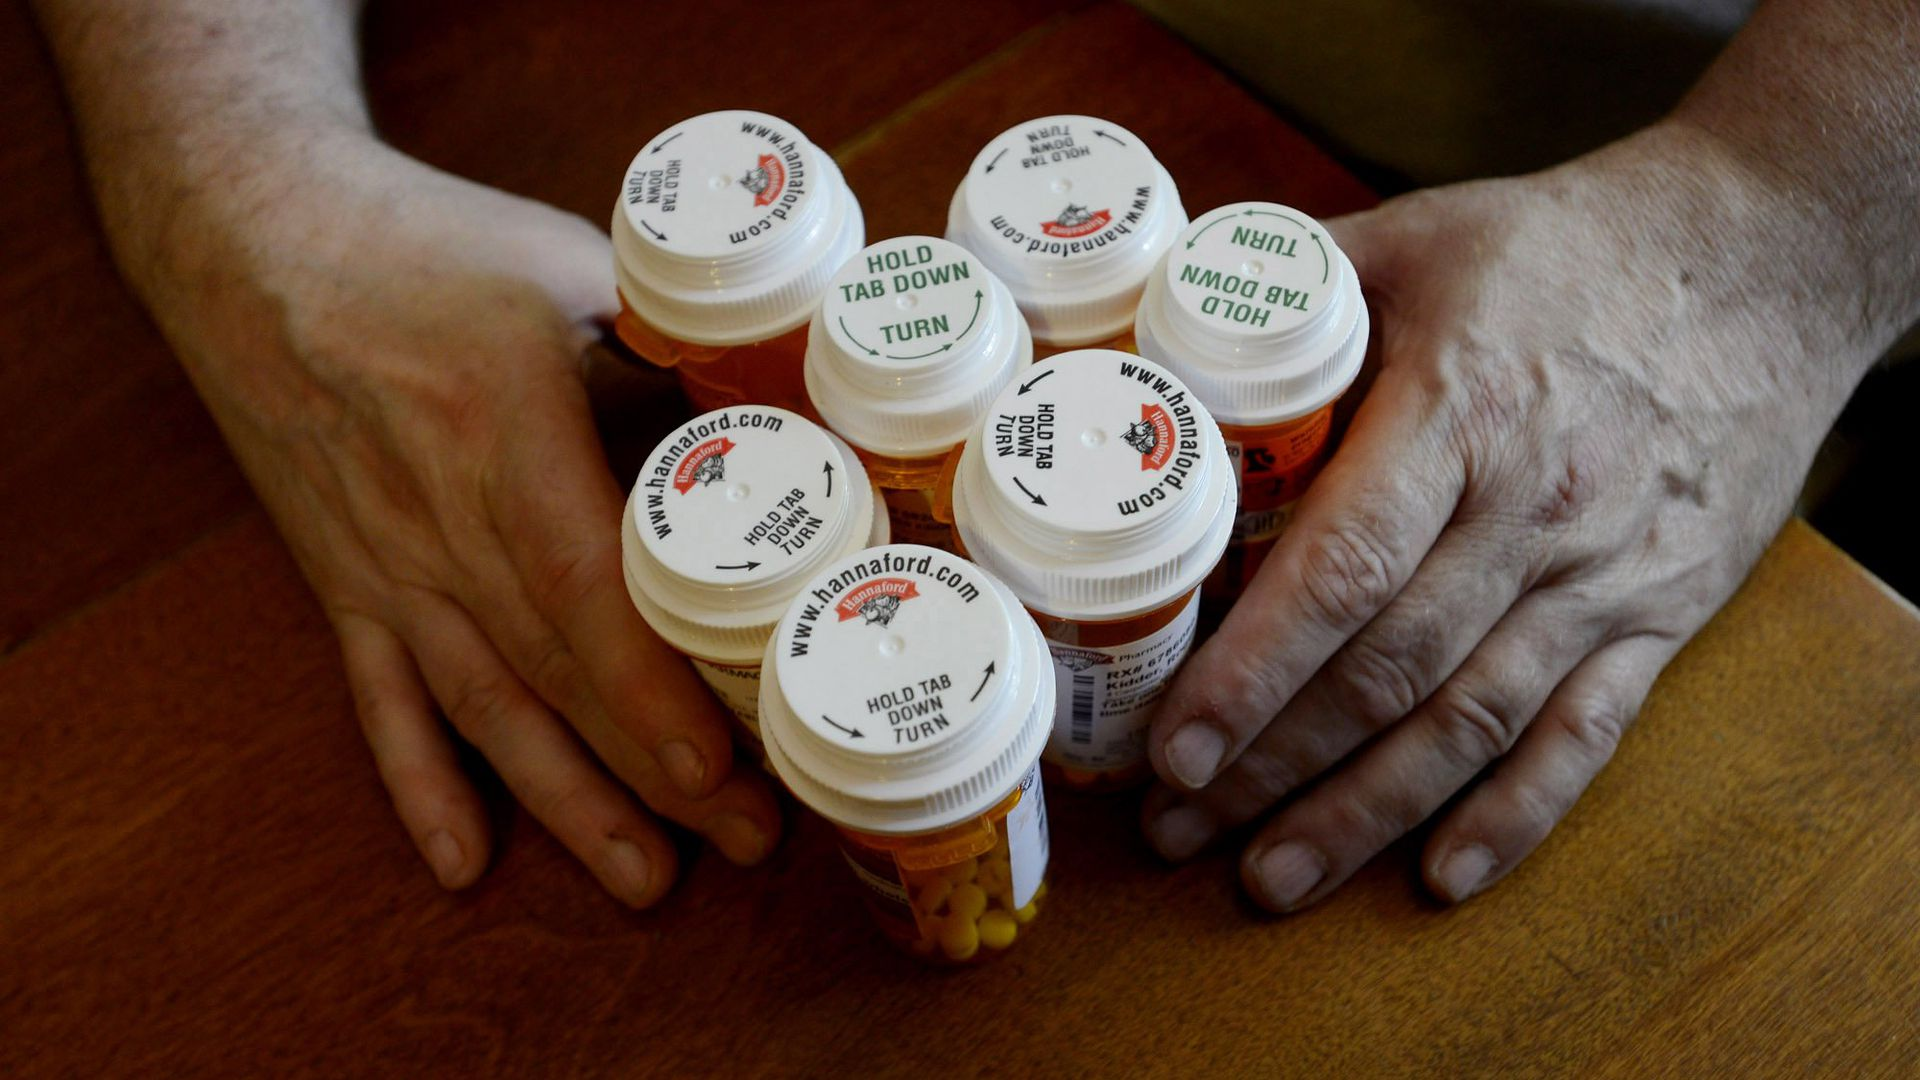 A person holds seven bottles of prescription drugs.